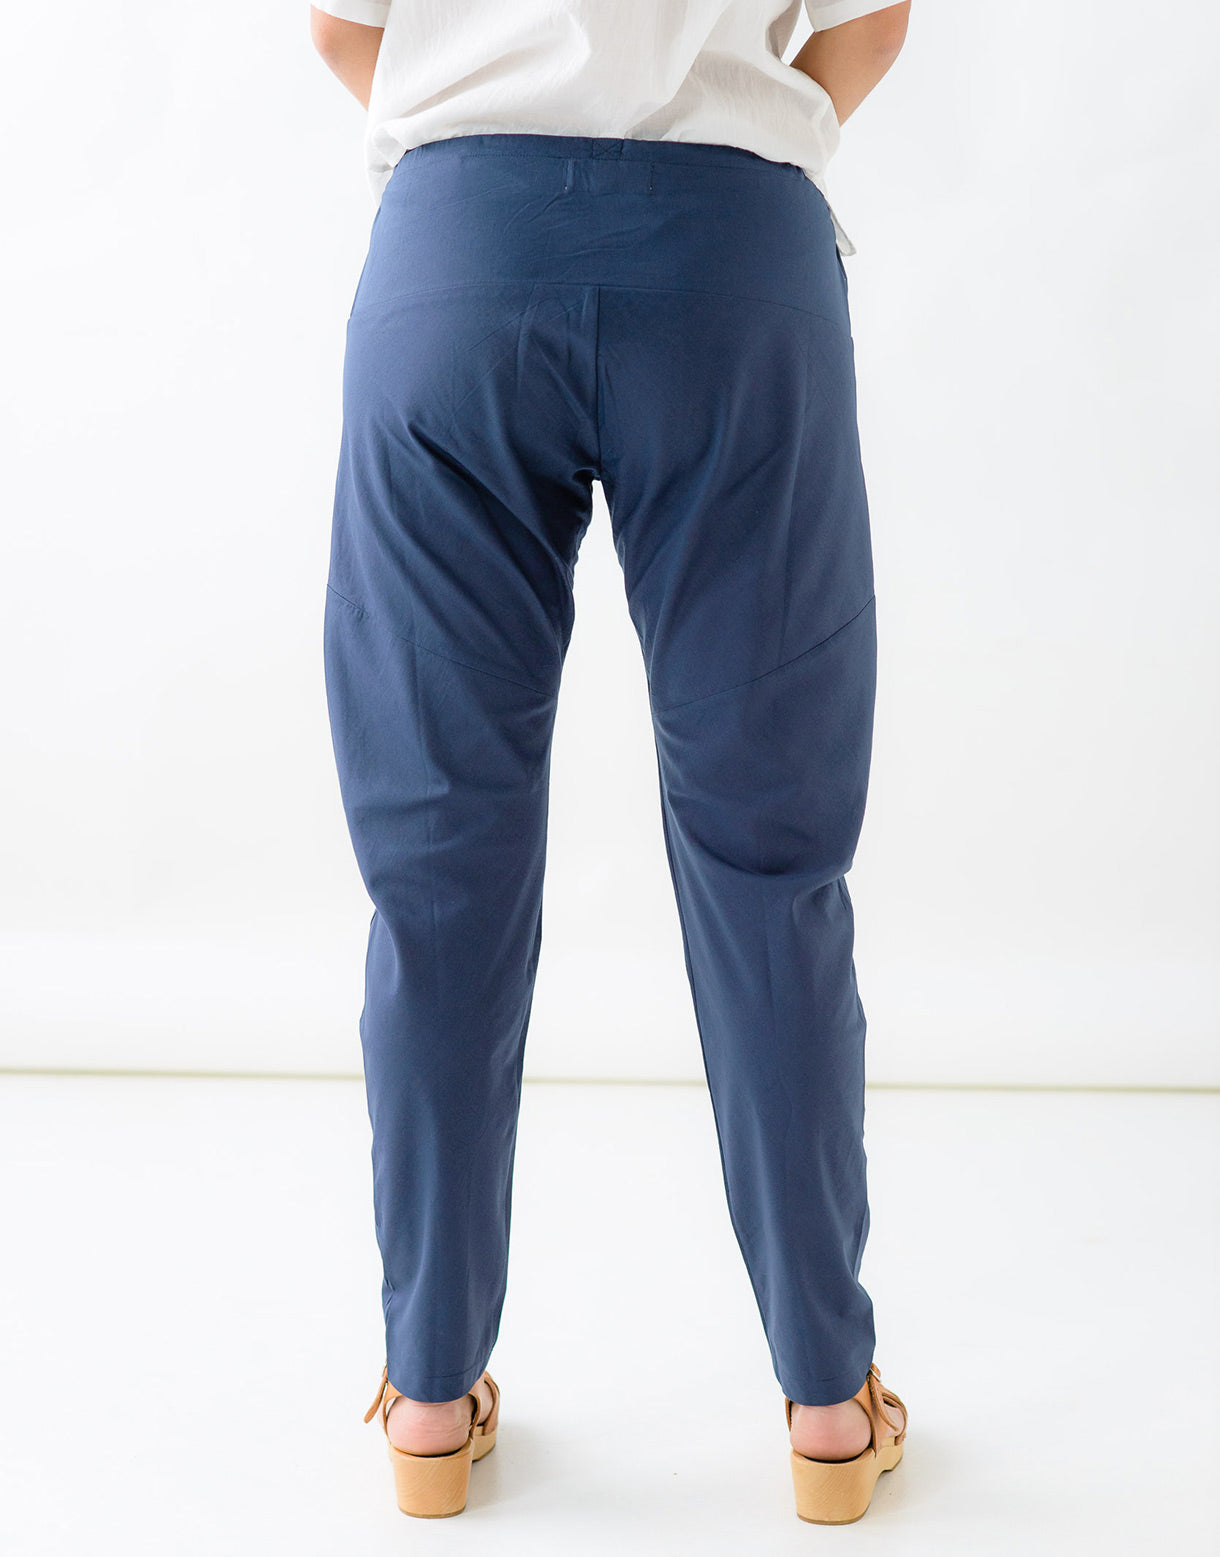 Meah Pant in Blue Night